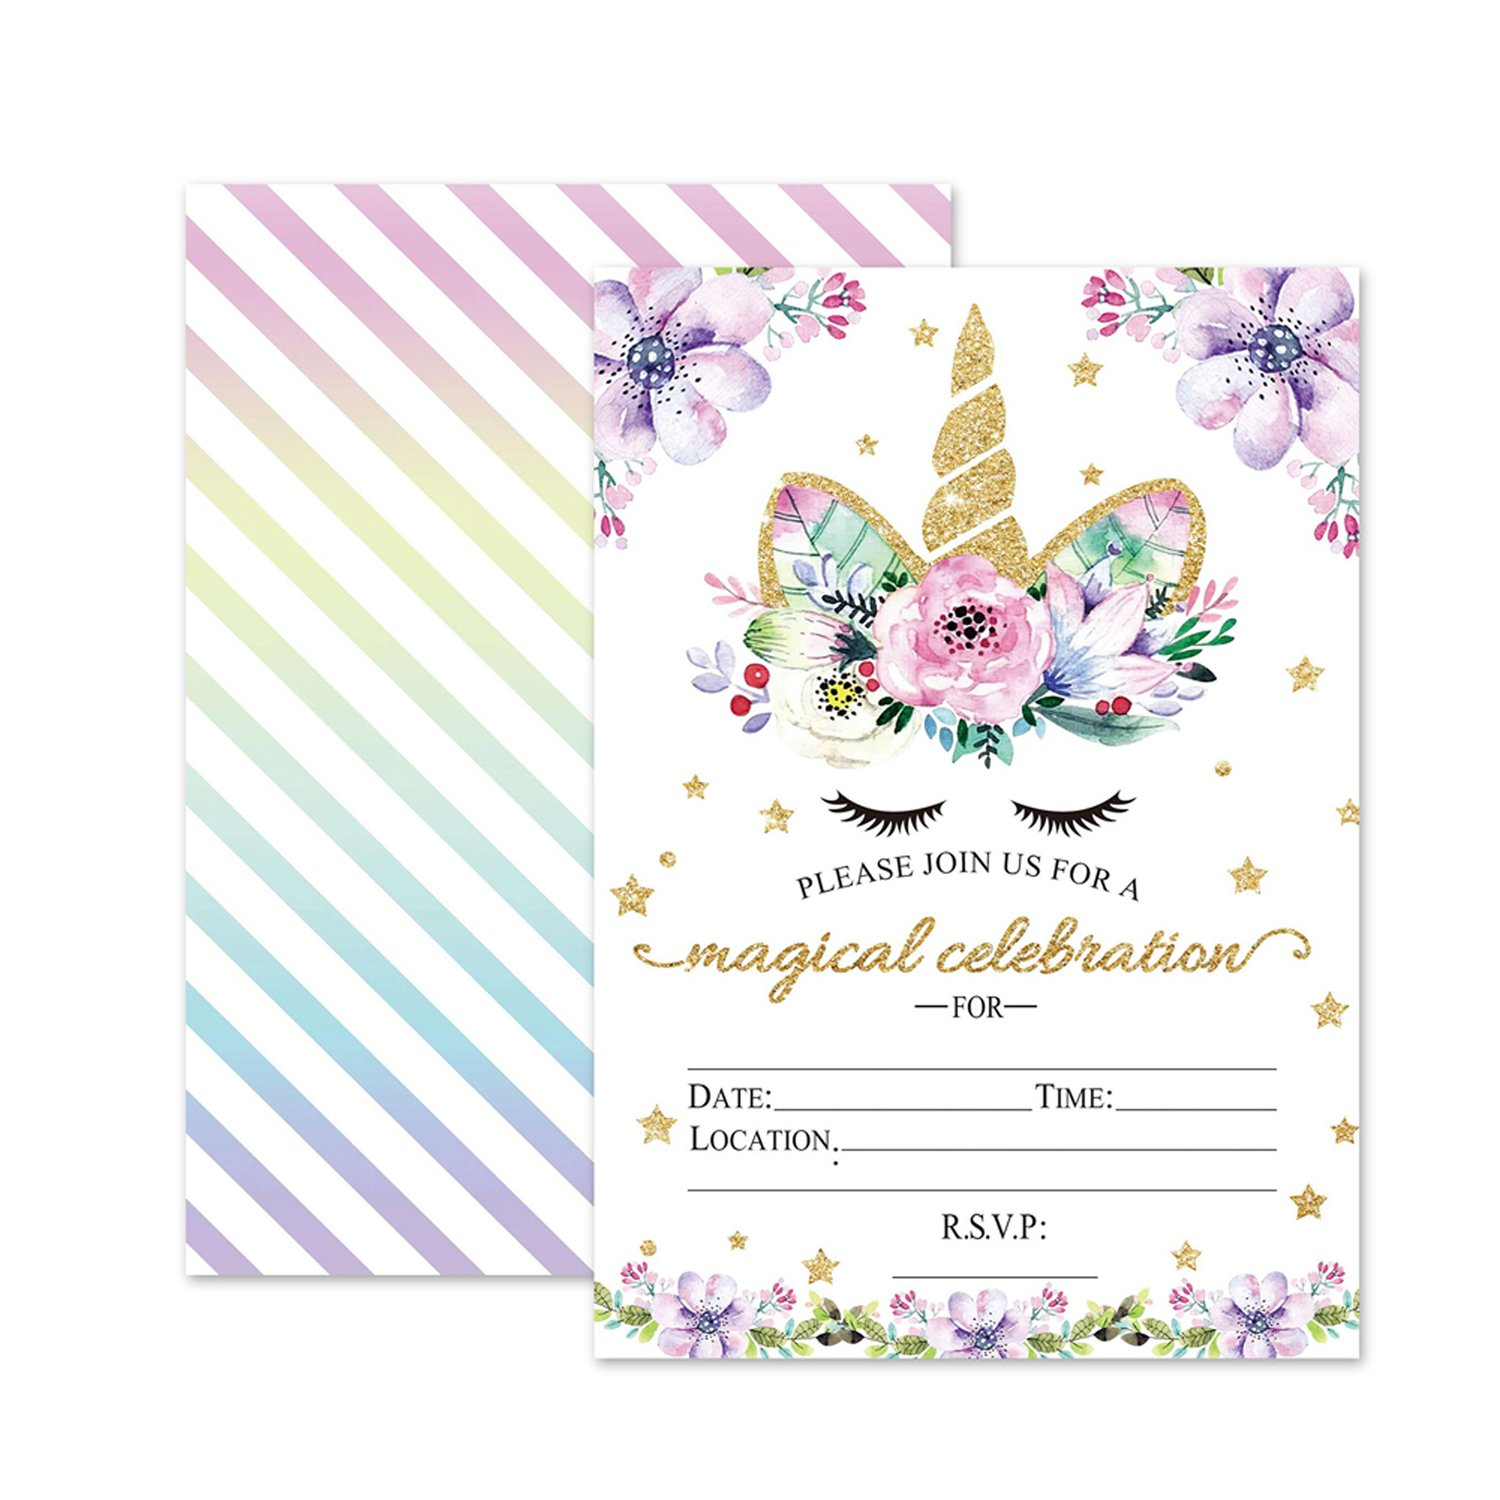 Magical Unicorn Birthday Invitations, Outego Glitter Unicorn Invitations with Envelopes for Kids Birthday (24 Pack) by Outego